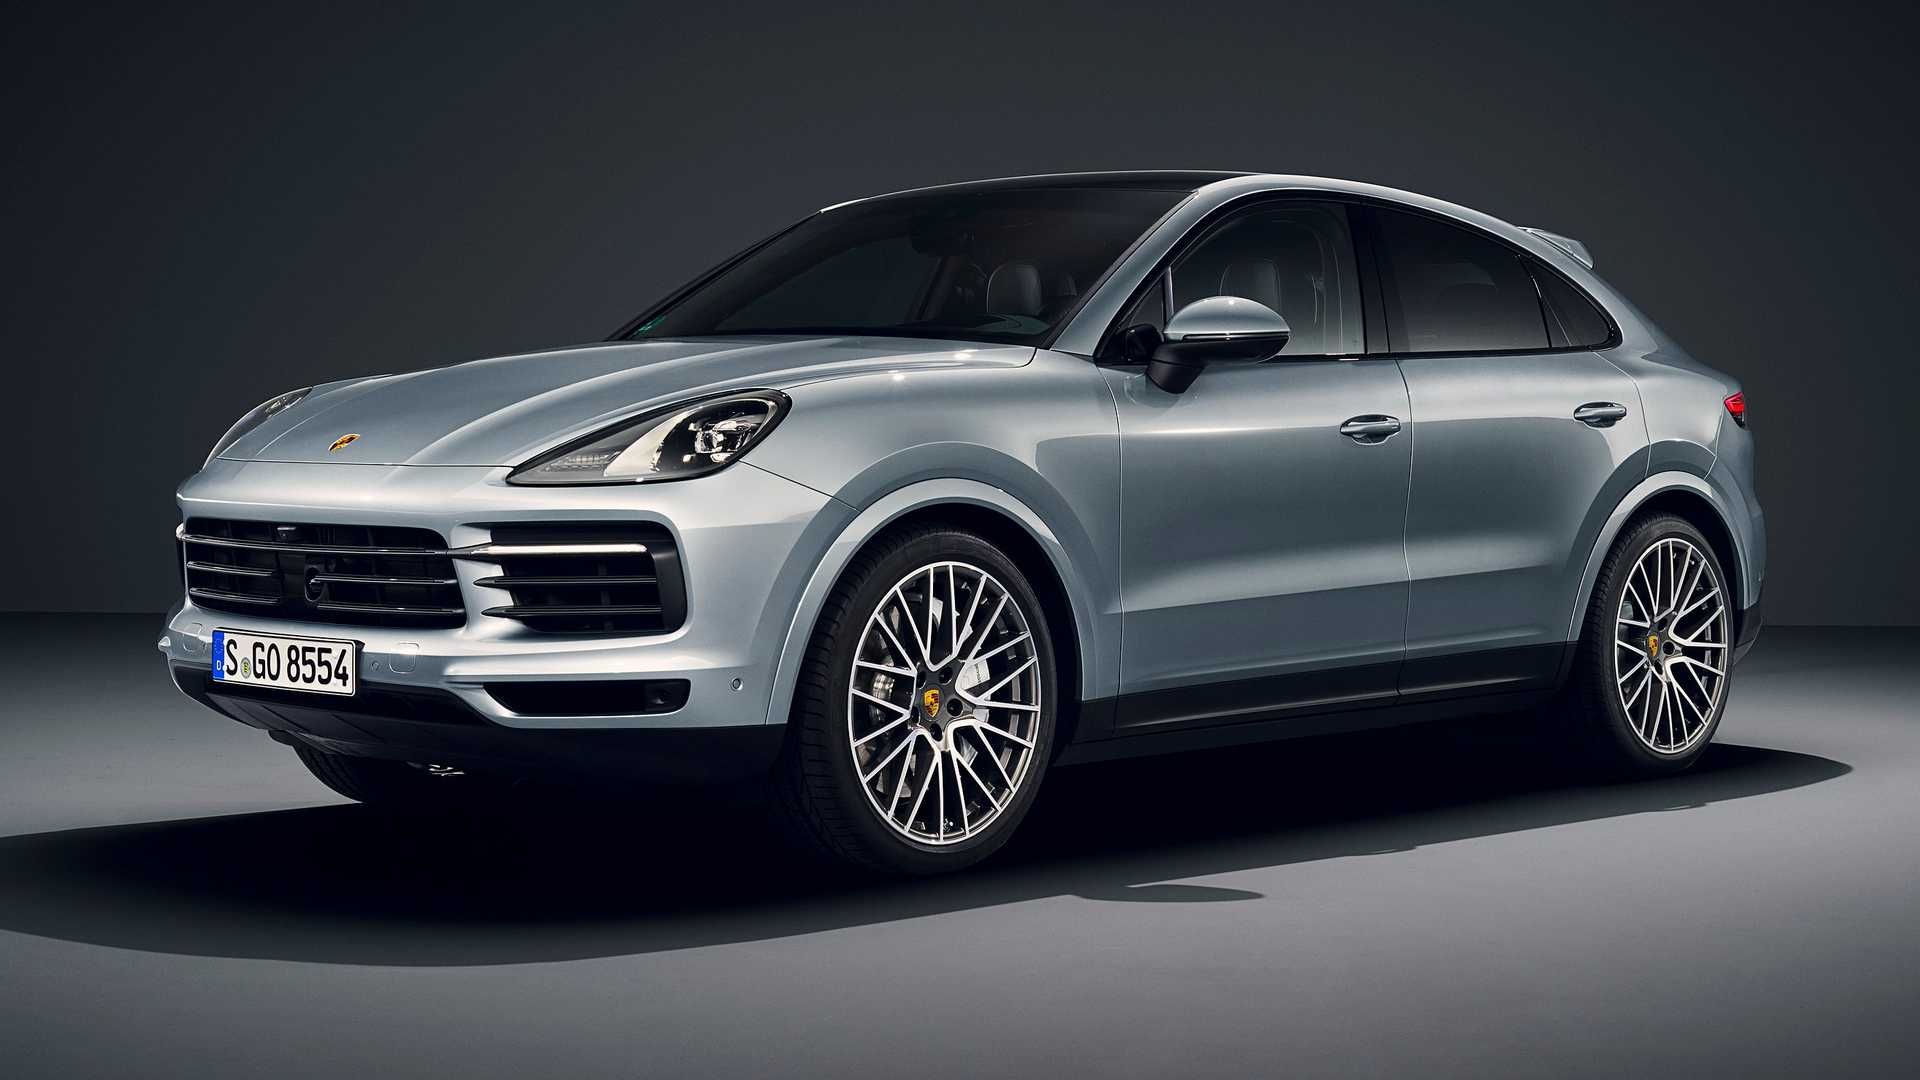 2020 Porsche Cayenne S Coupe Debuts As A 434 Hp Middle Child